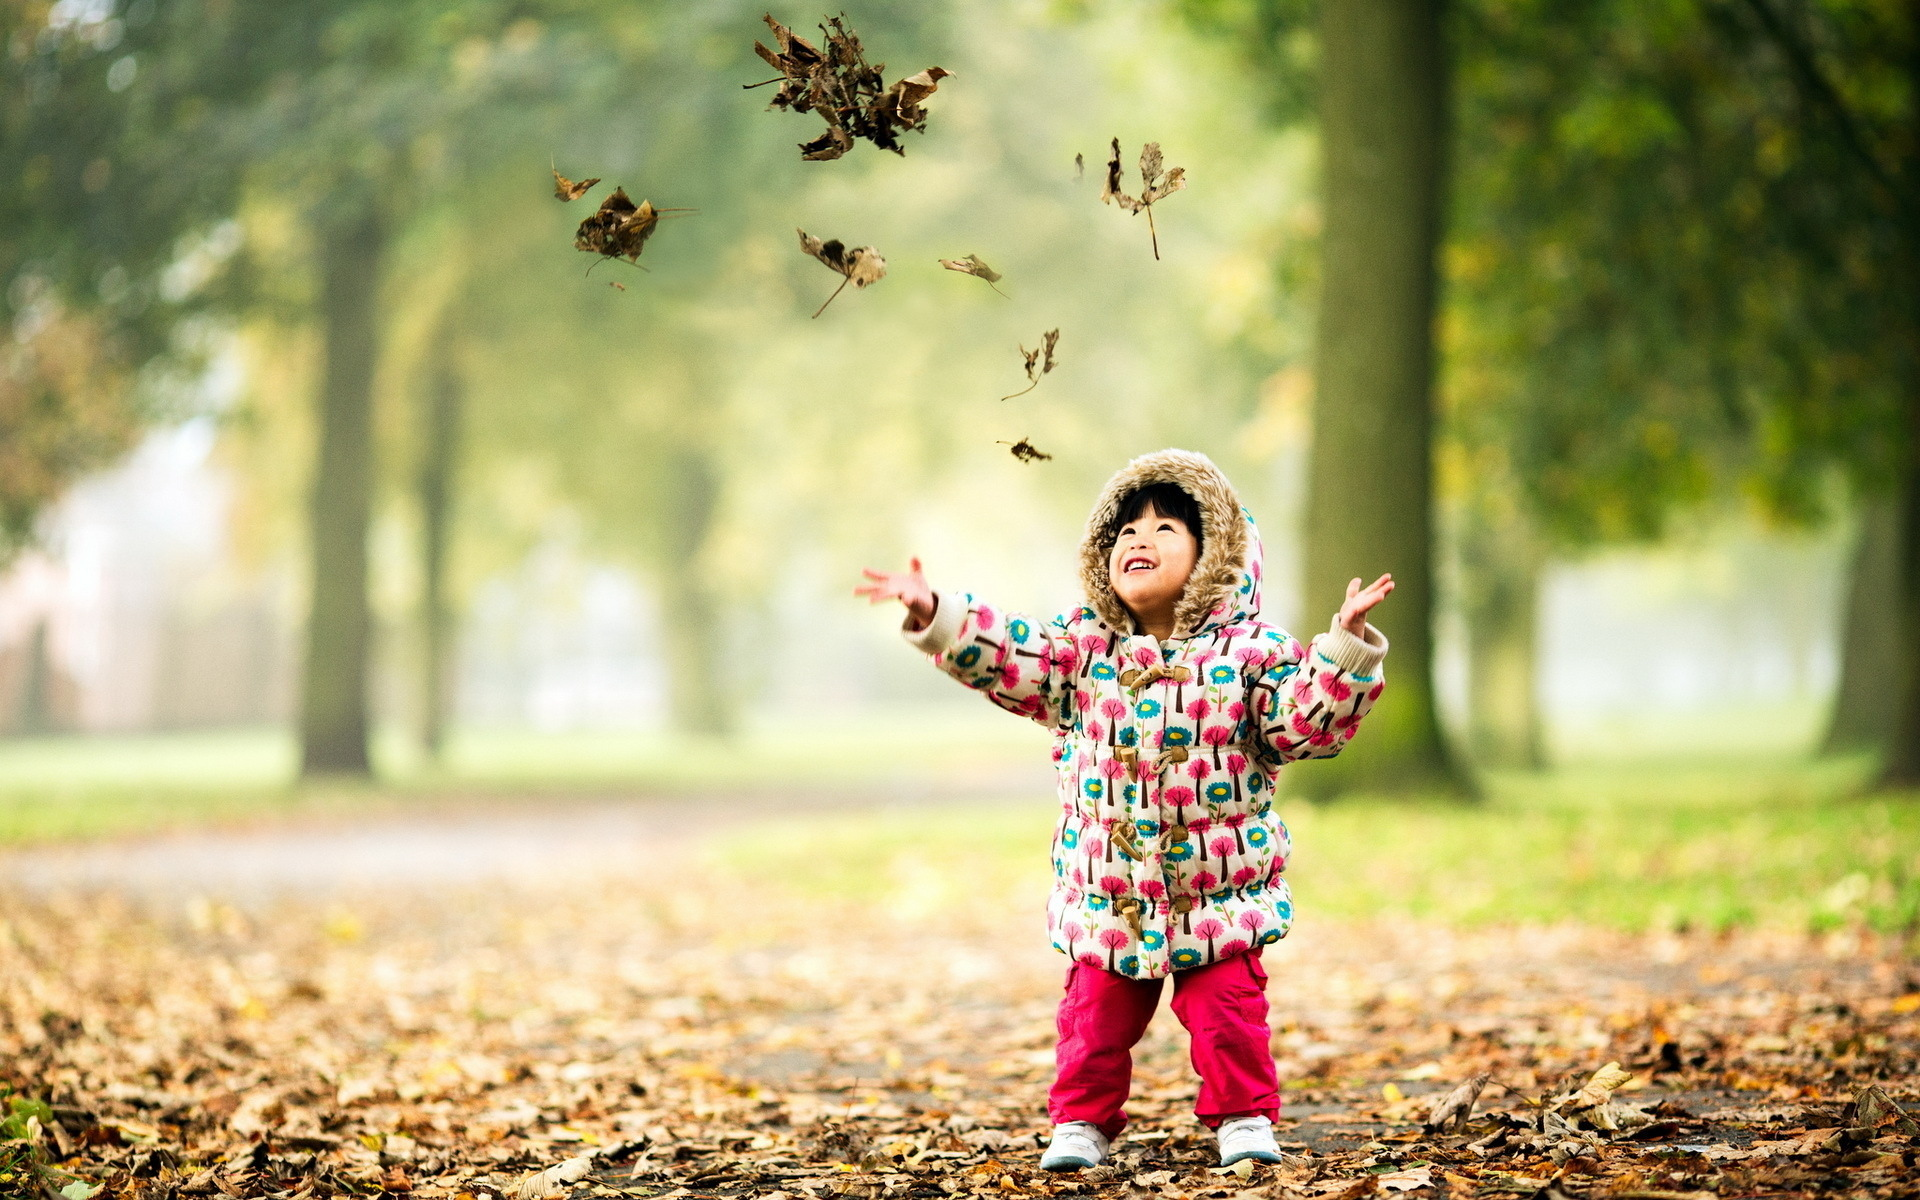 Child Full HD Wallpaper And Background Image